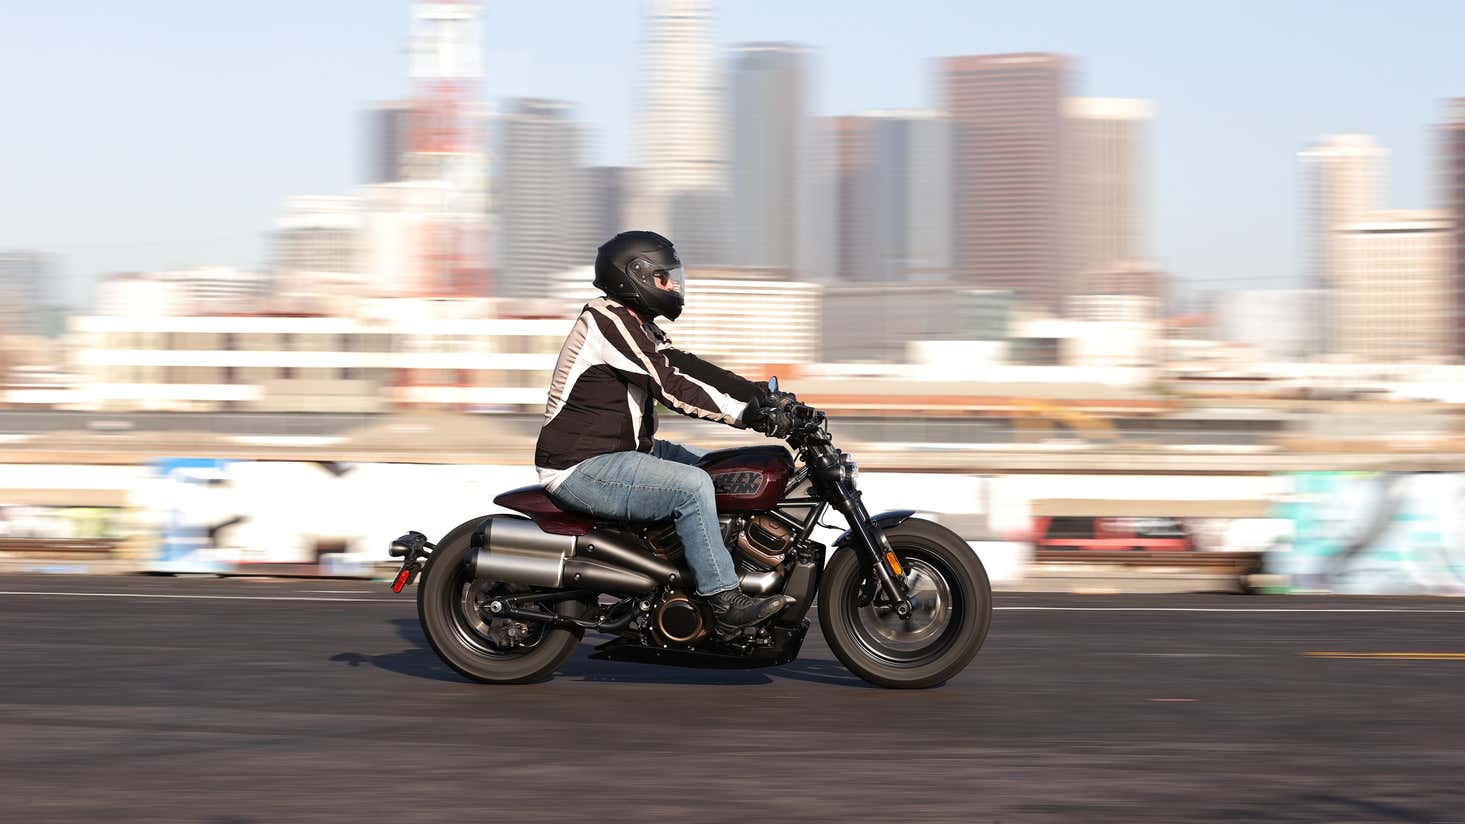 The 2022 Harley-davidson Sportster S Is A Paradigm Shift